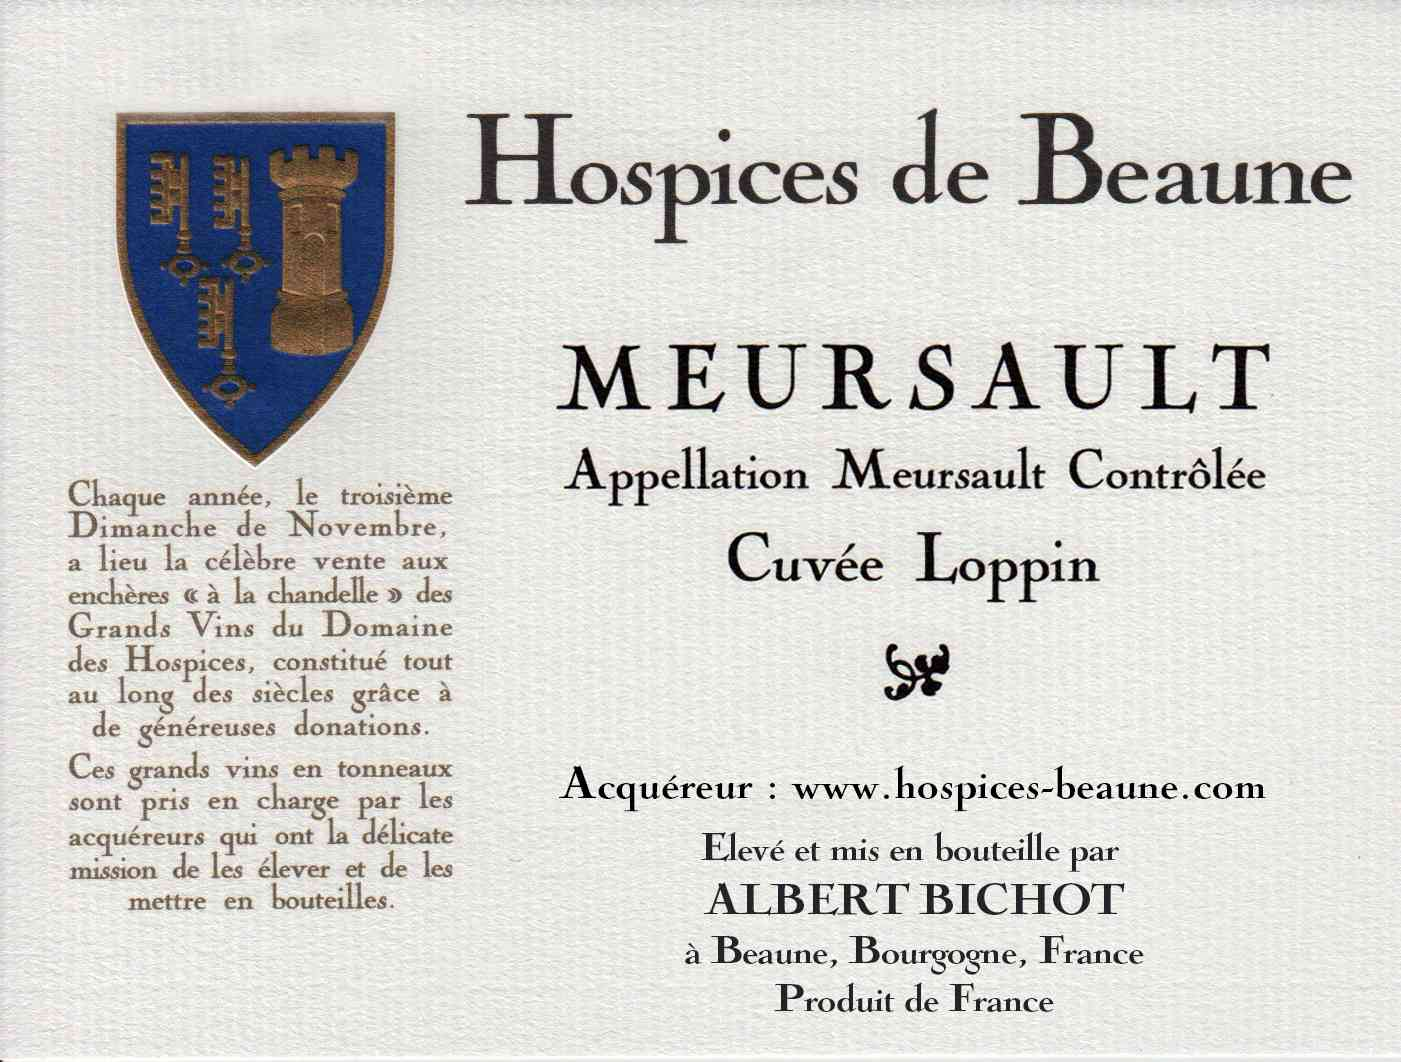 Encheres-auction-HospicesdeBeaune-AlbertBichot-Meursault-Cuvee-Loppin